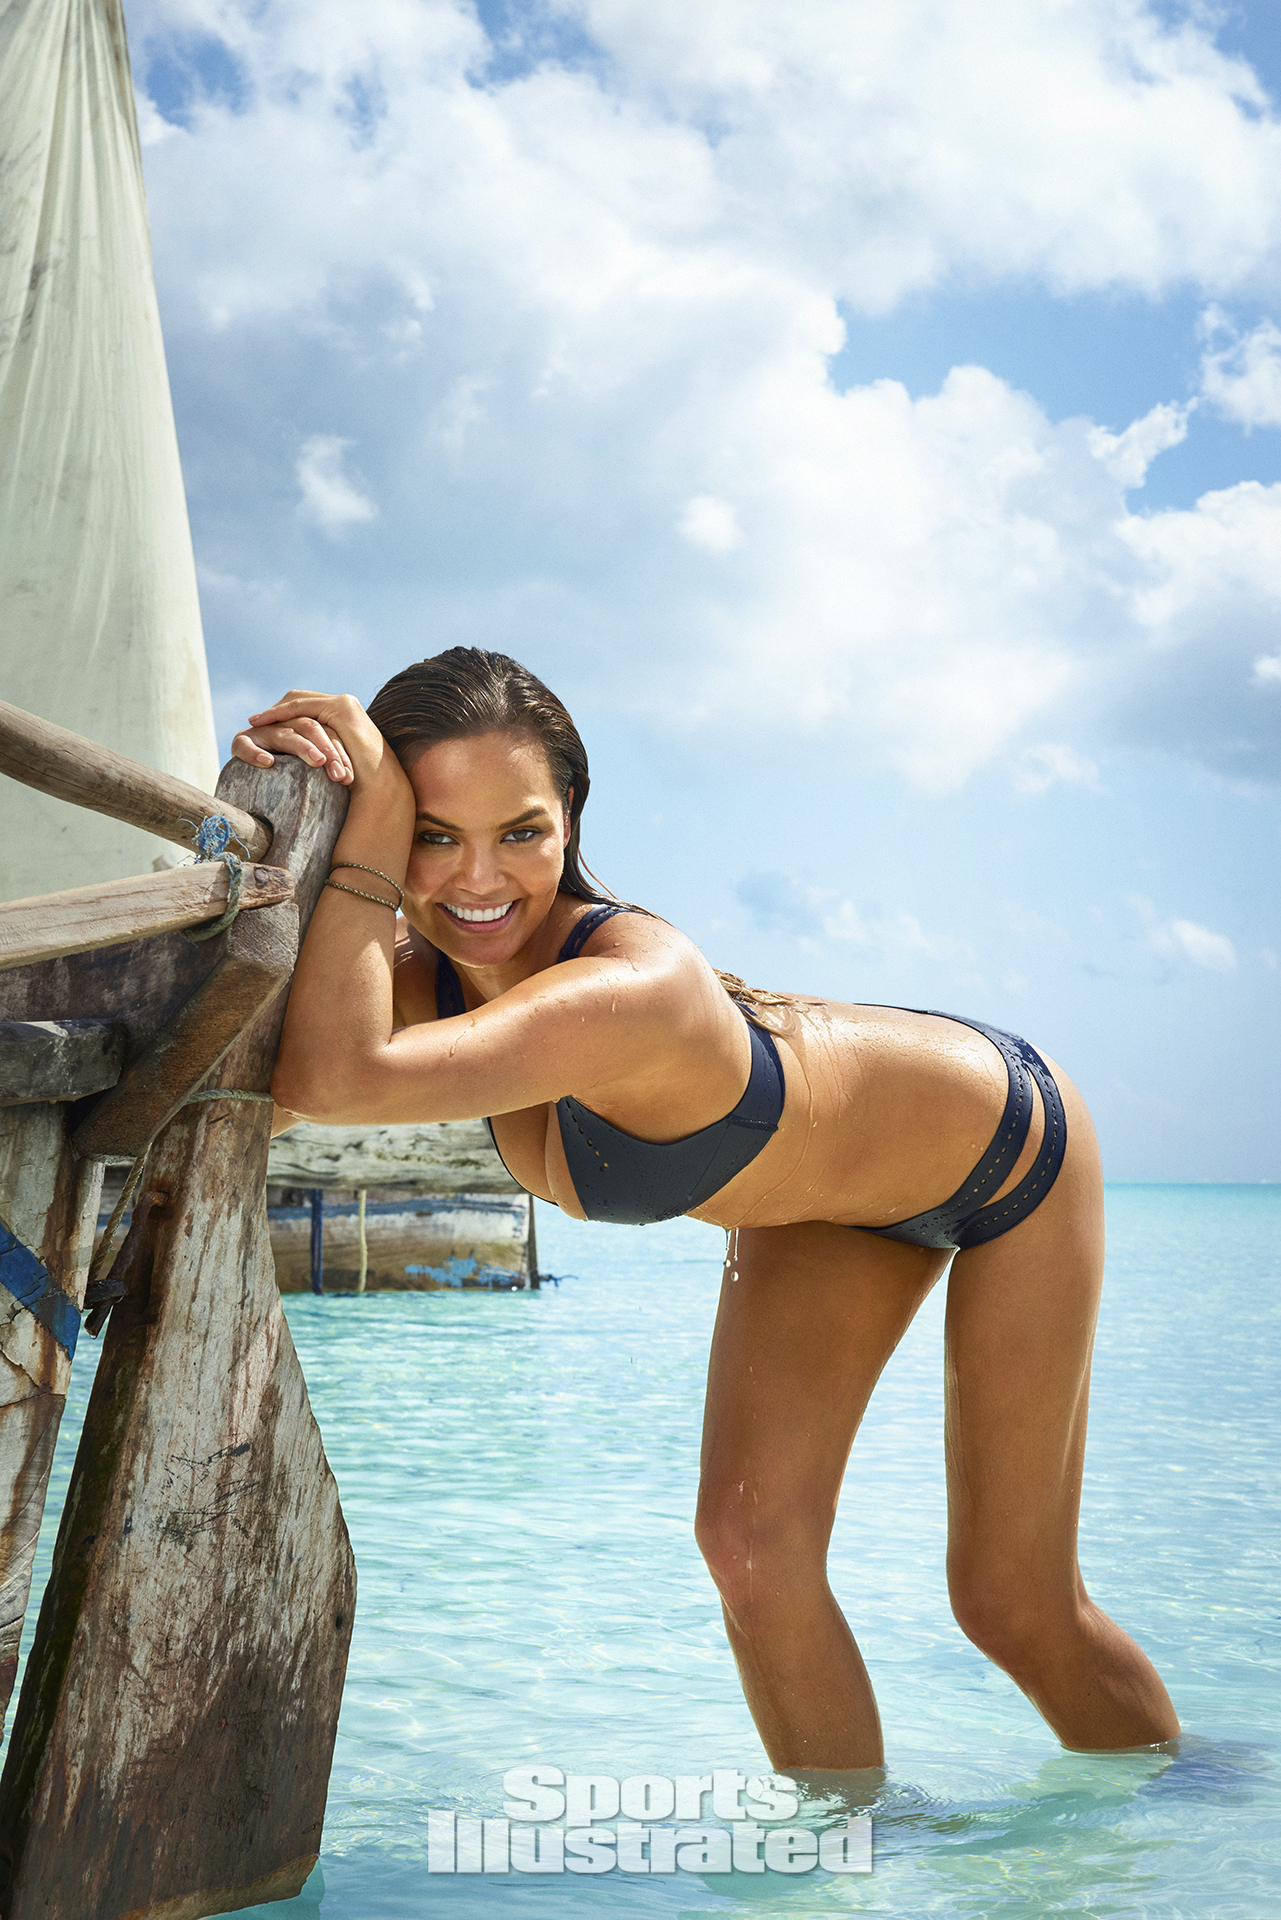 Chrissy Teigen was photographed by Ruven Afanador in Zanzibar. Swimsuit by INDAH.